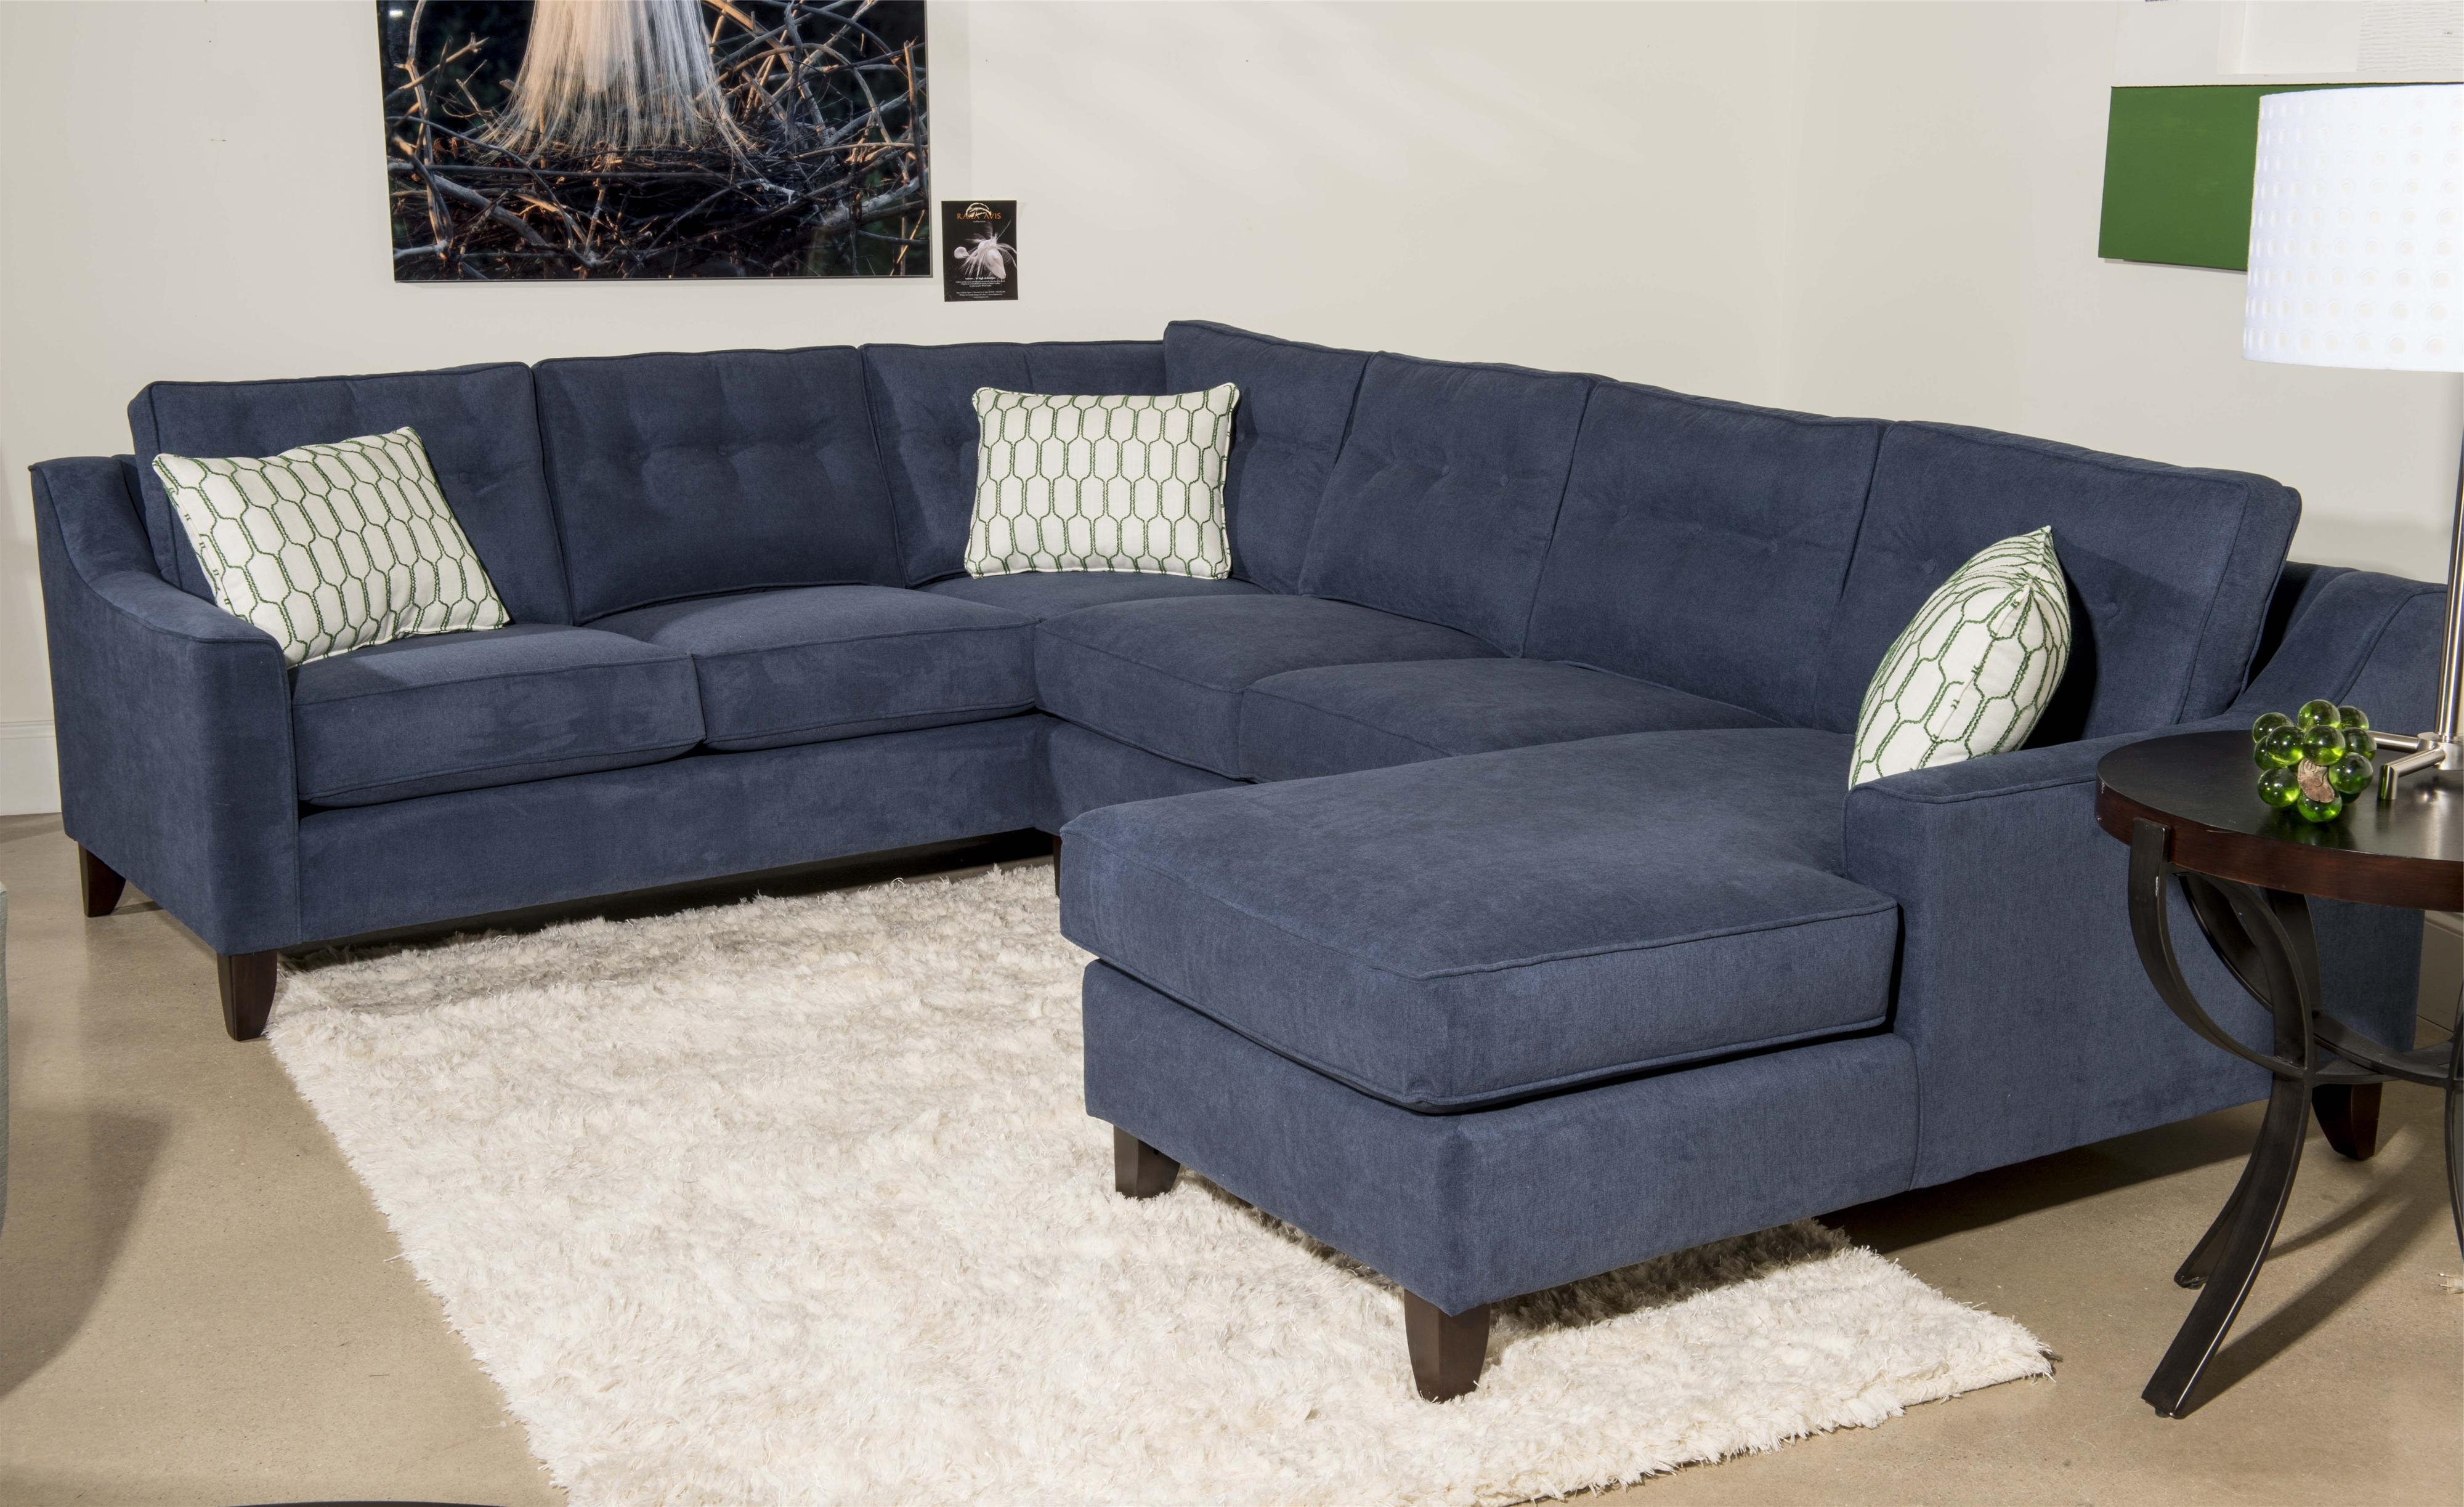 Sofa Chaise Sectionals Inside Widely Used Contemporary 3 Piece Sectional Sofa With Chaiseklaussner (View 10 of 15)